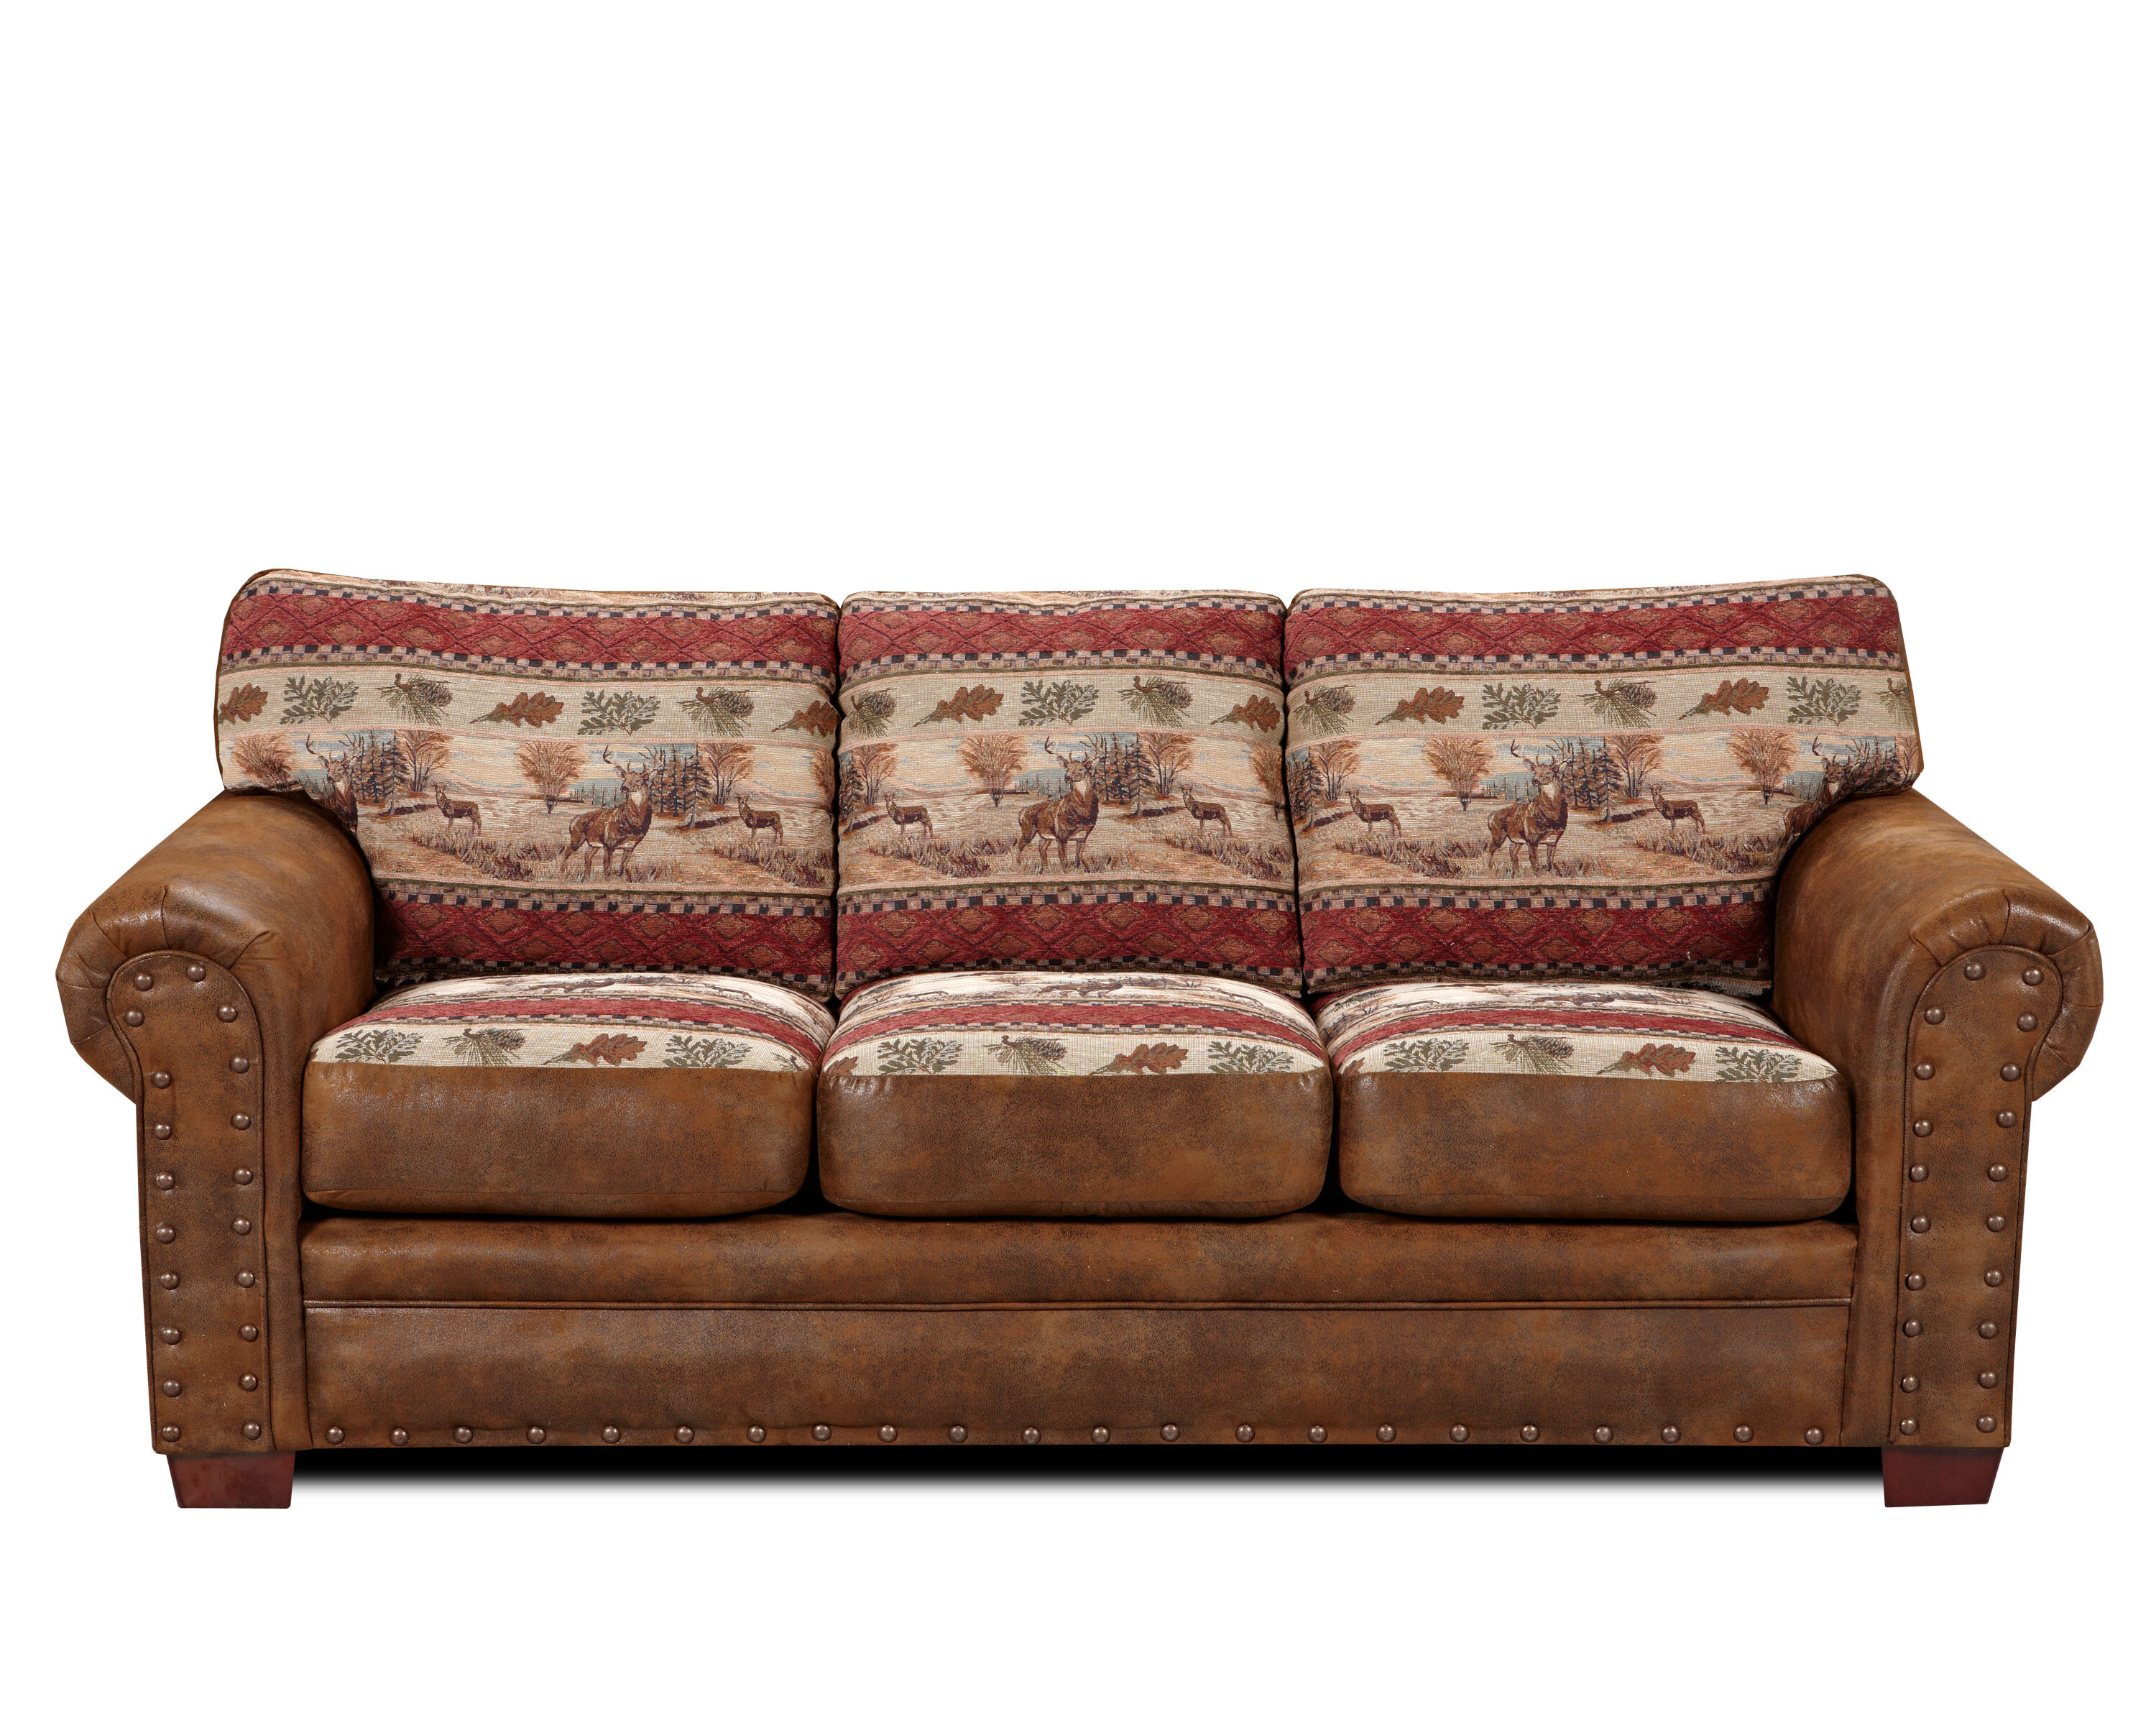 Millwood Pines Deer Valley Cotton Sofa Bed 88 Round Arms